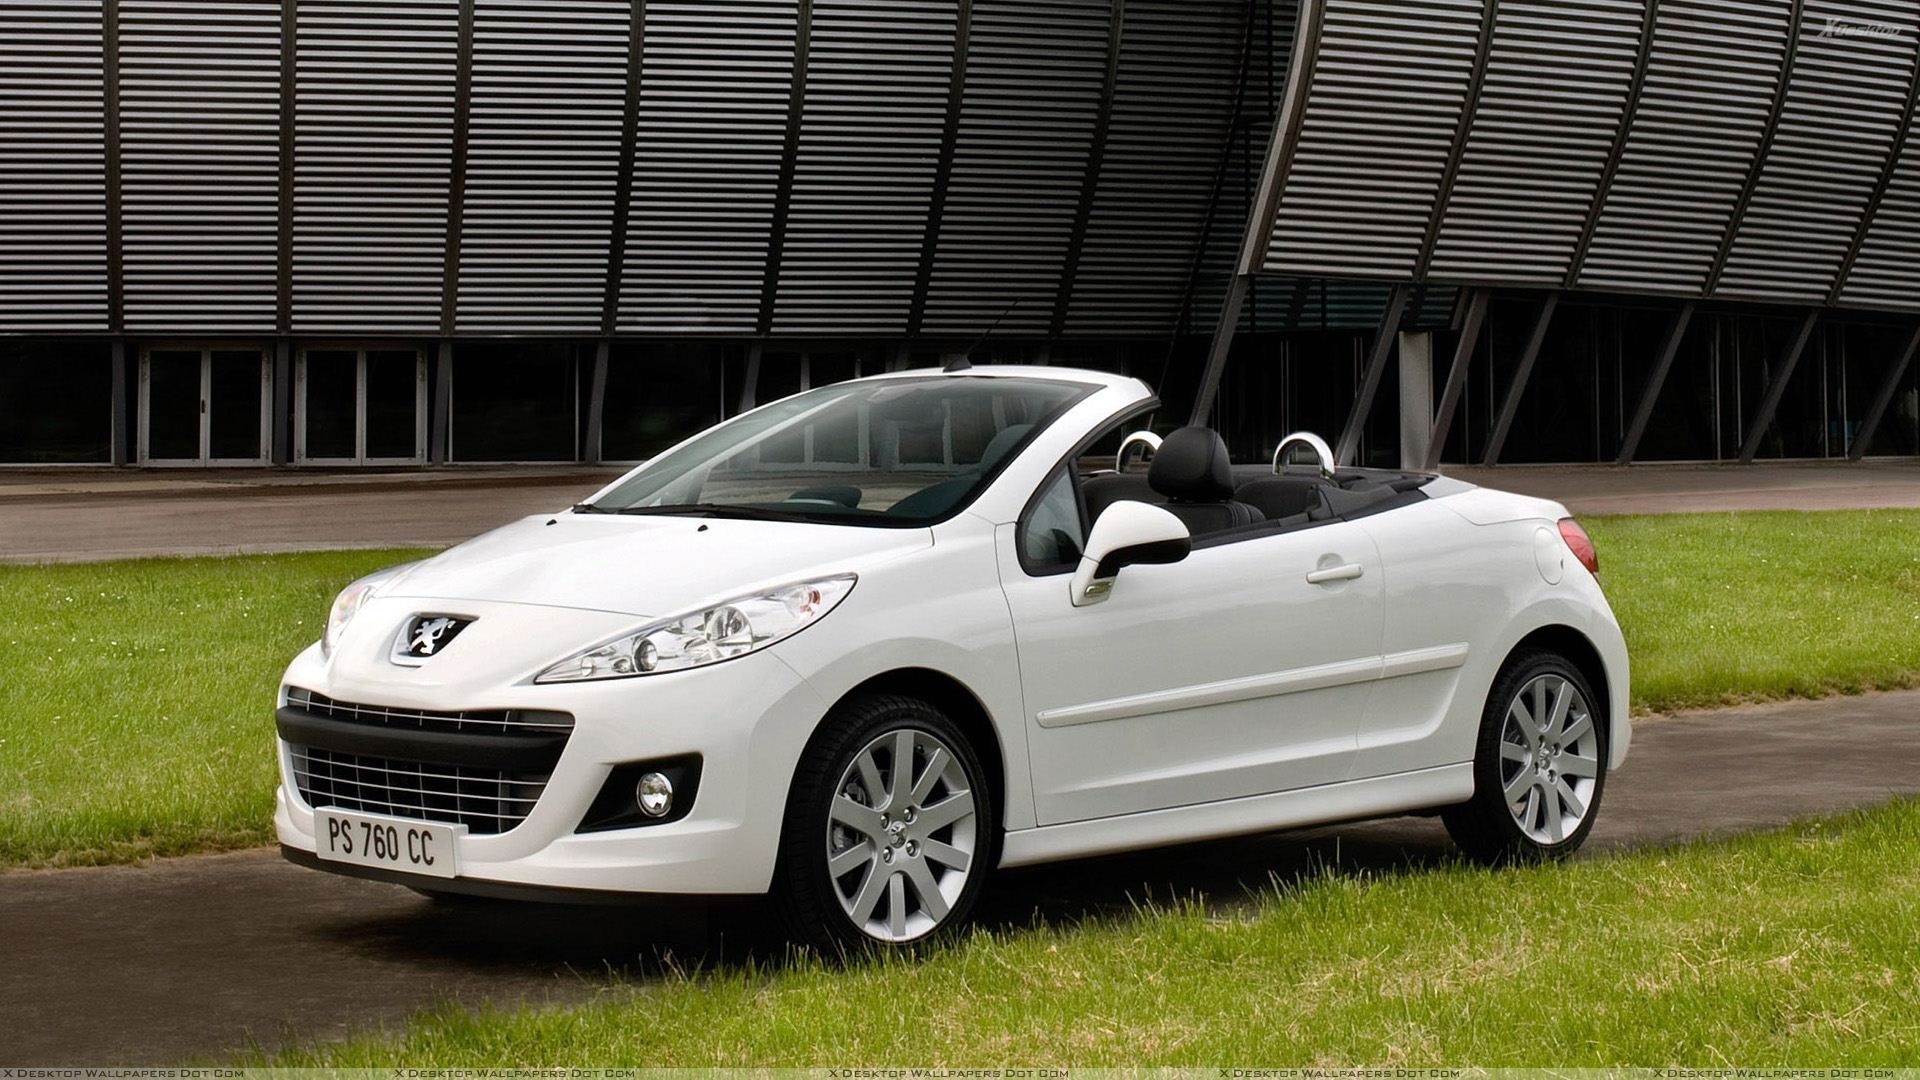 peugeot 207 cc restyled in white side pose wallpaper. Black Bedroom Furniture Sets. Home Design Ideas